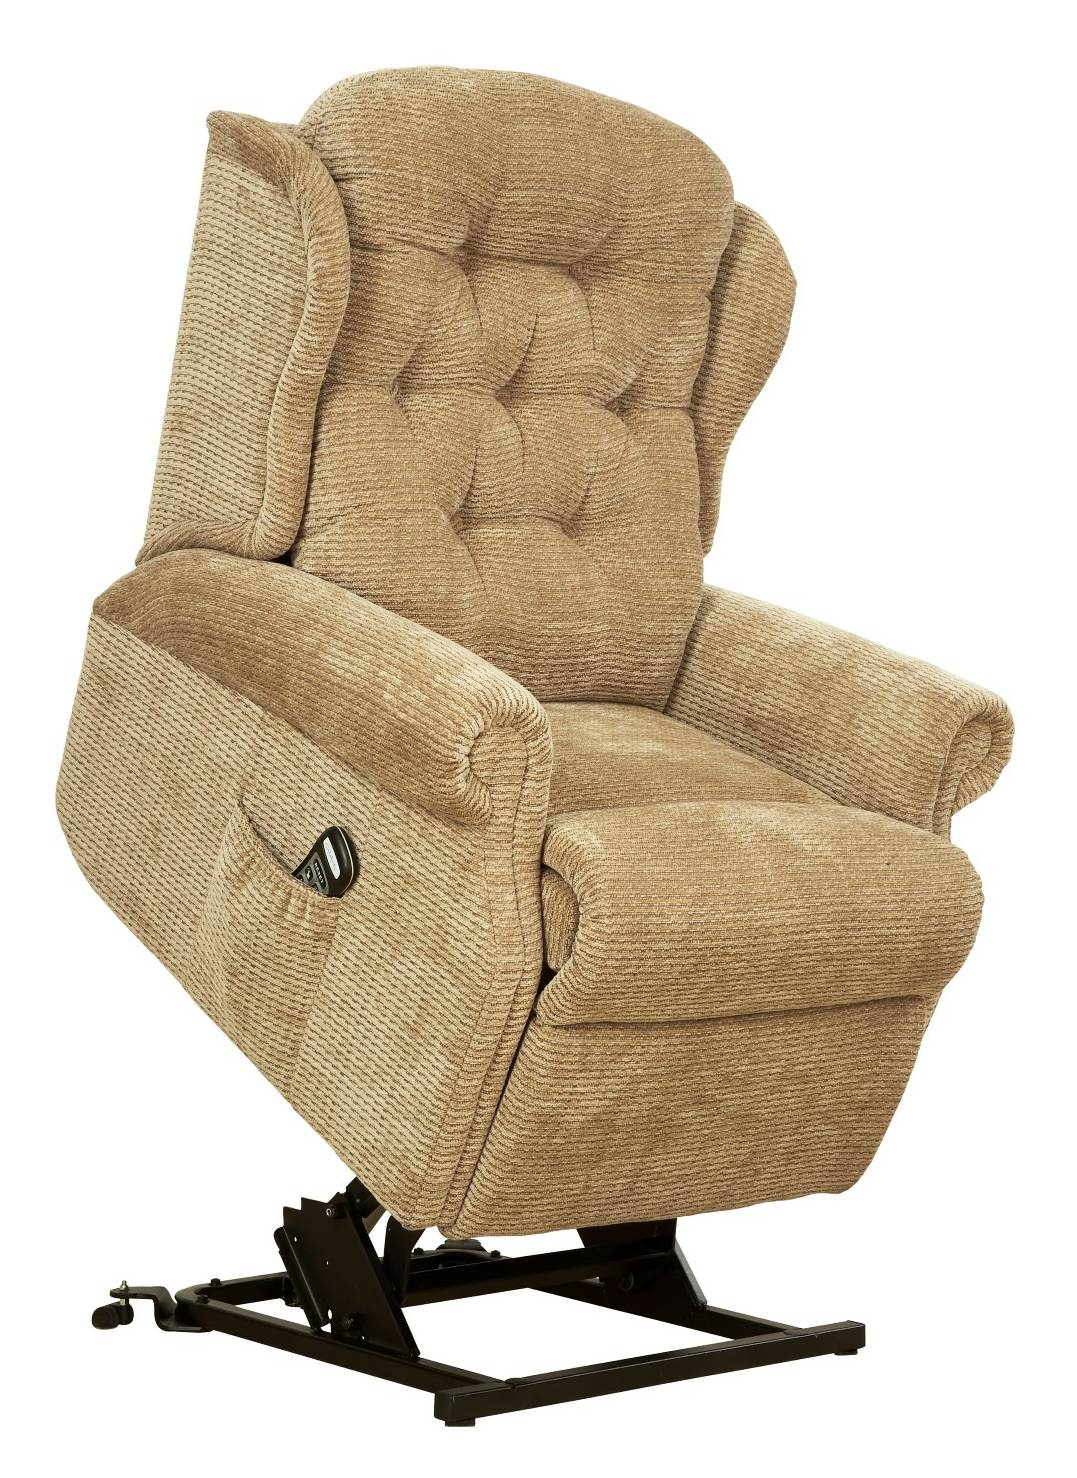 small lift chairs recliners baby couch chair celebrity woburn petite dual motor recliner fabric